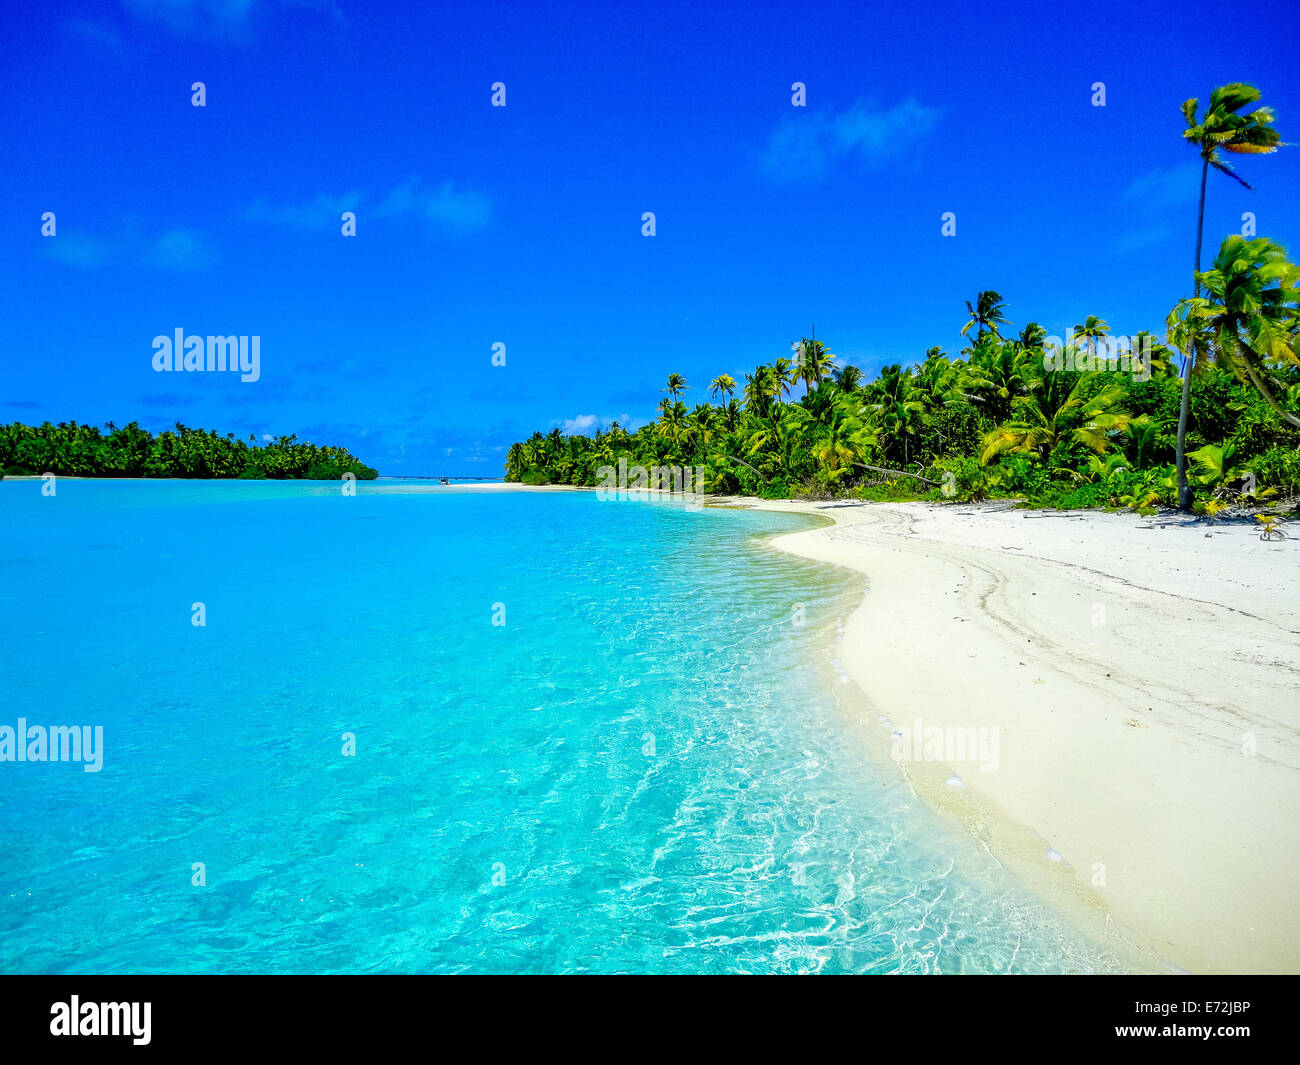 A picture of paradise in Aitutaki, The Cook Islands - Stock Image